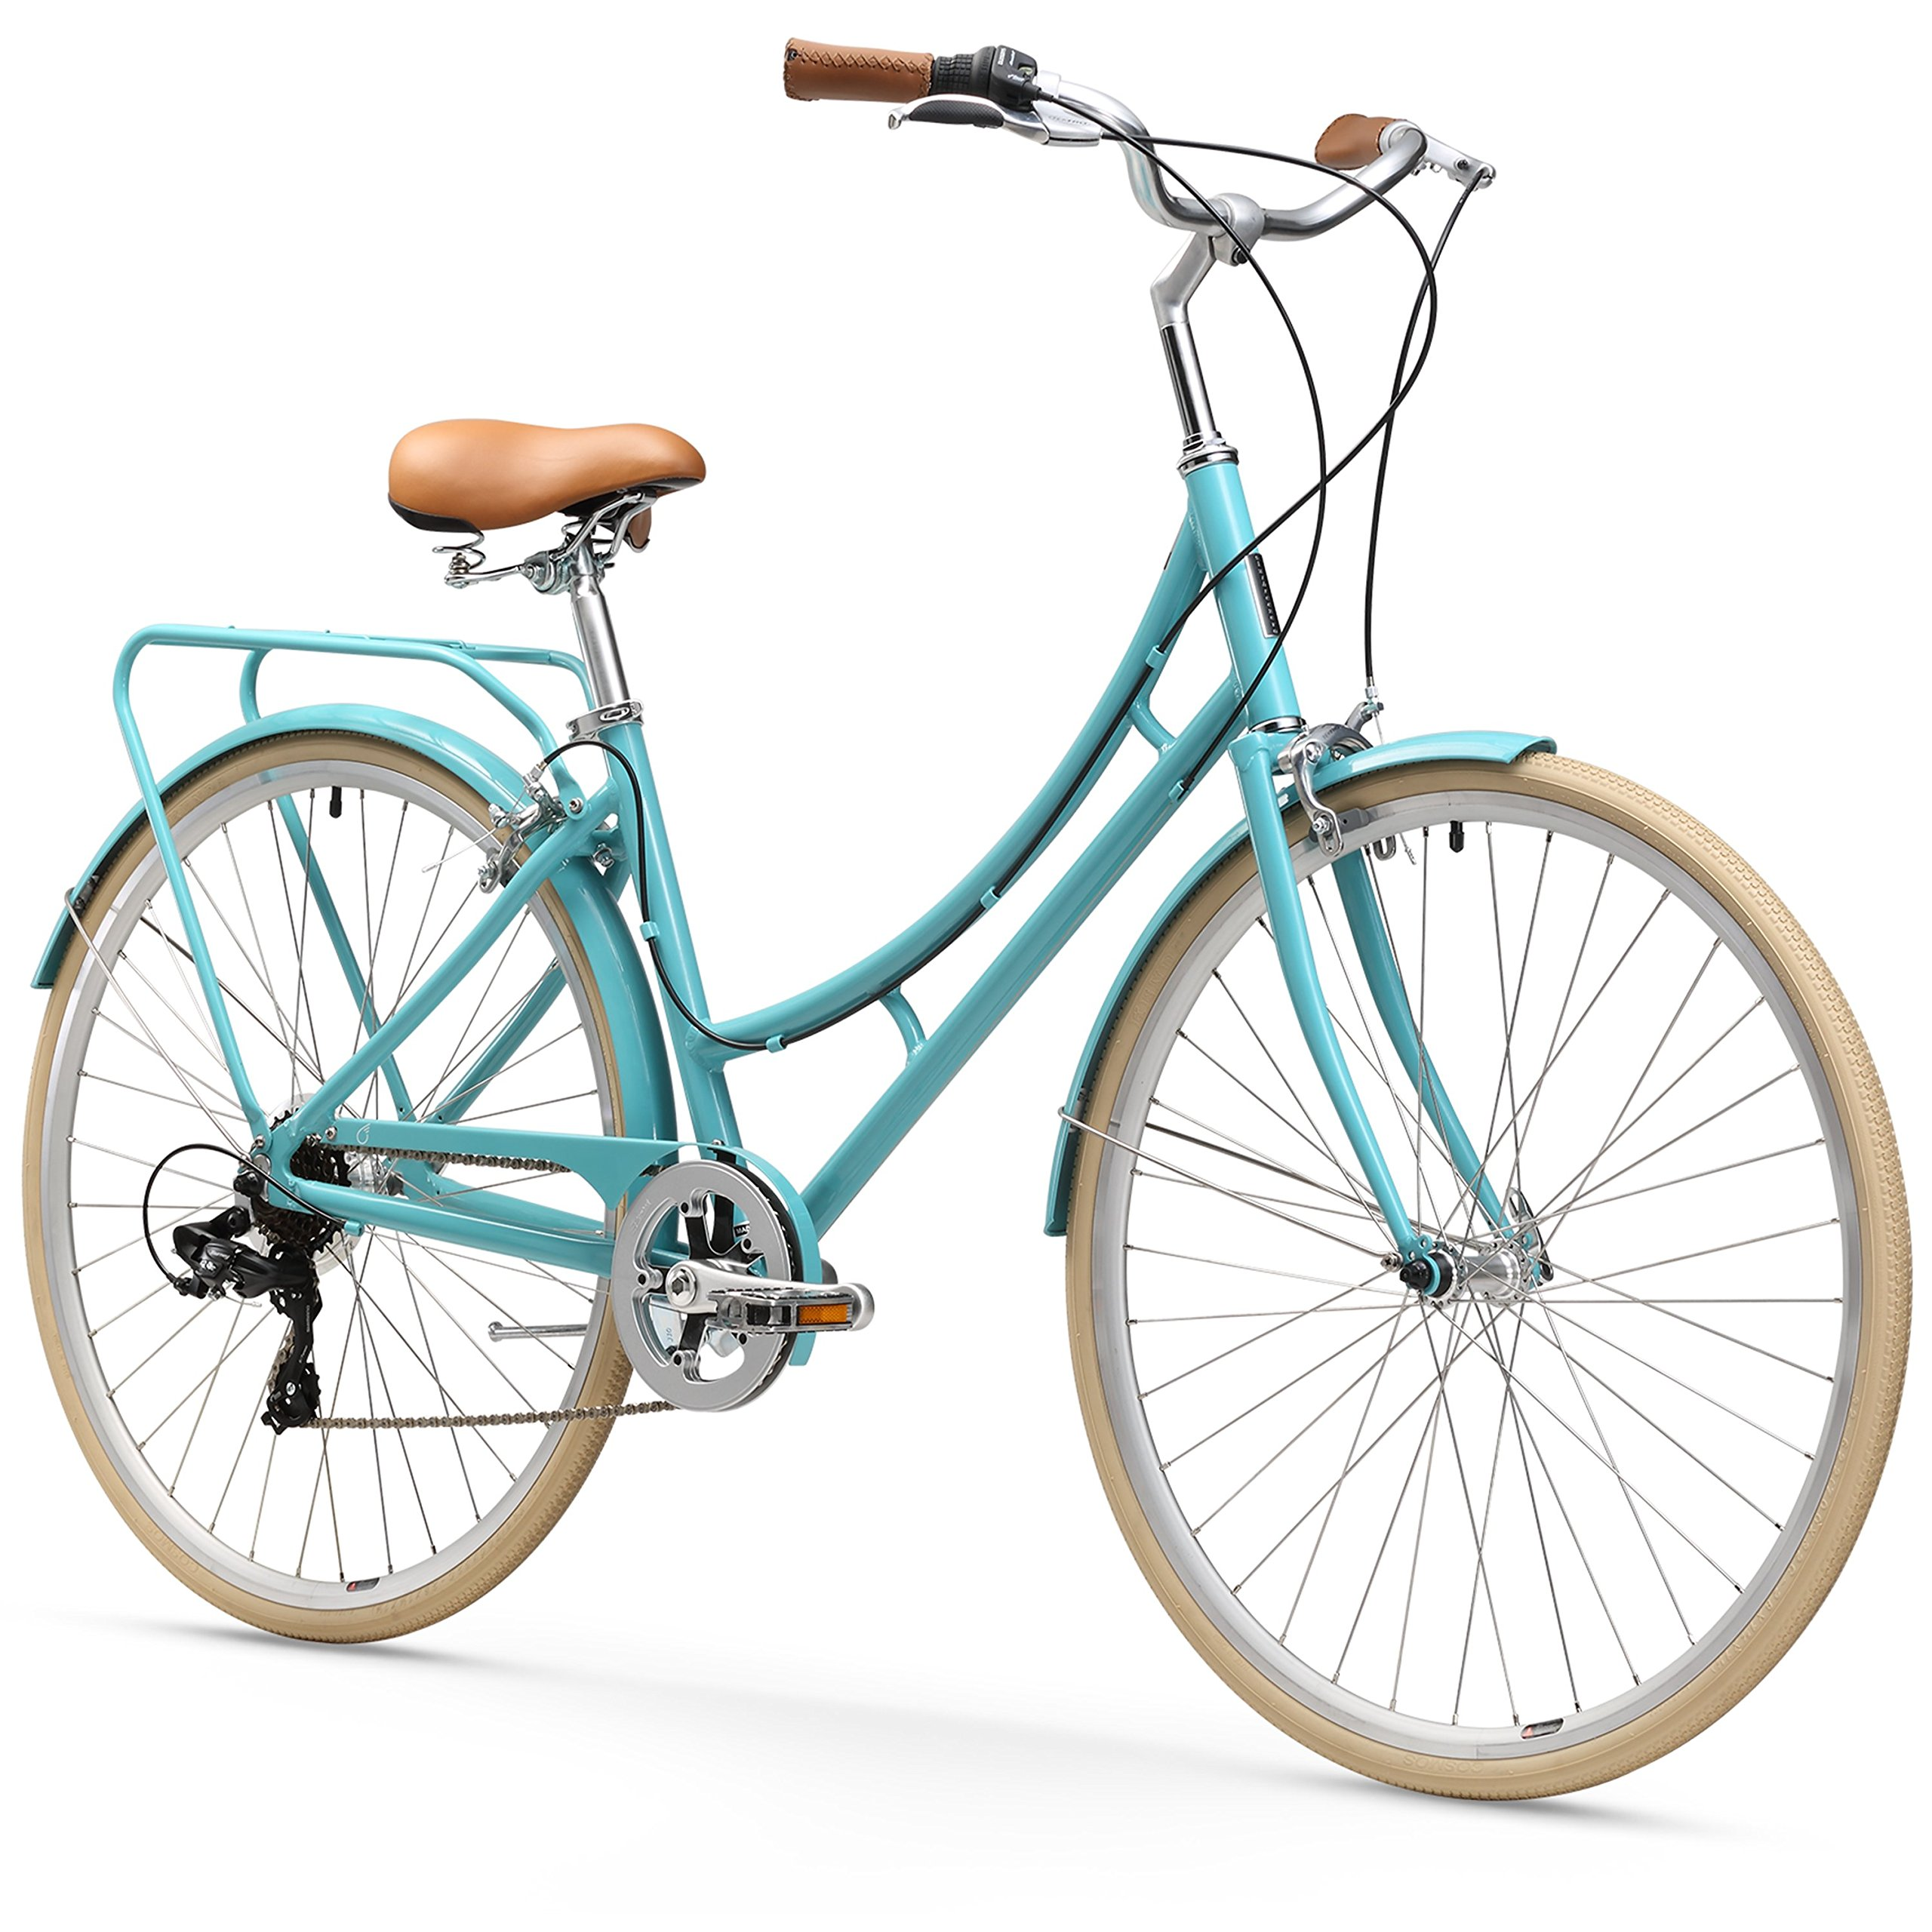 sixthreezero Ride in the Park Women's 7-Speed City Bicycle, 17-Inch Frame/700C Wheels, Blue